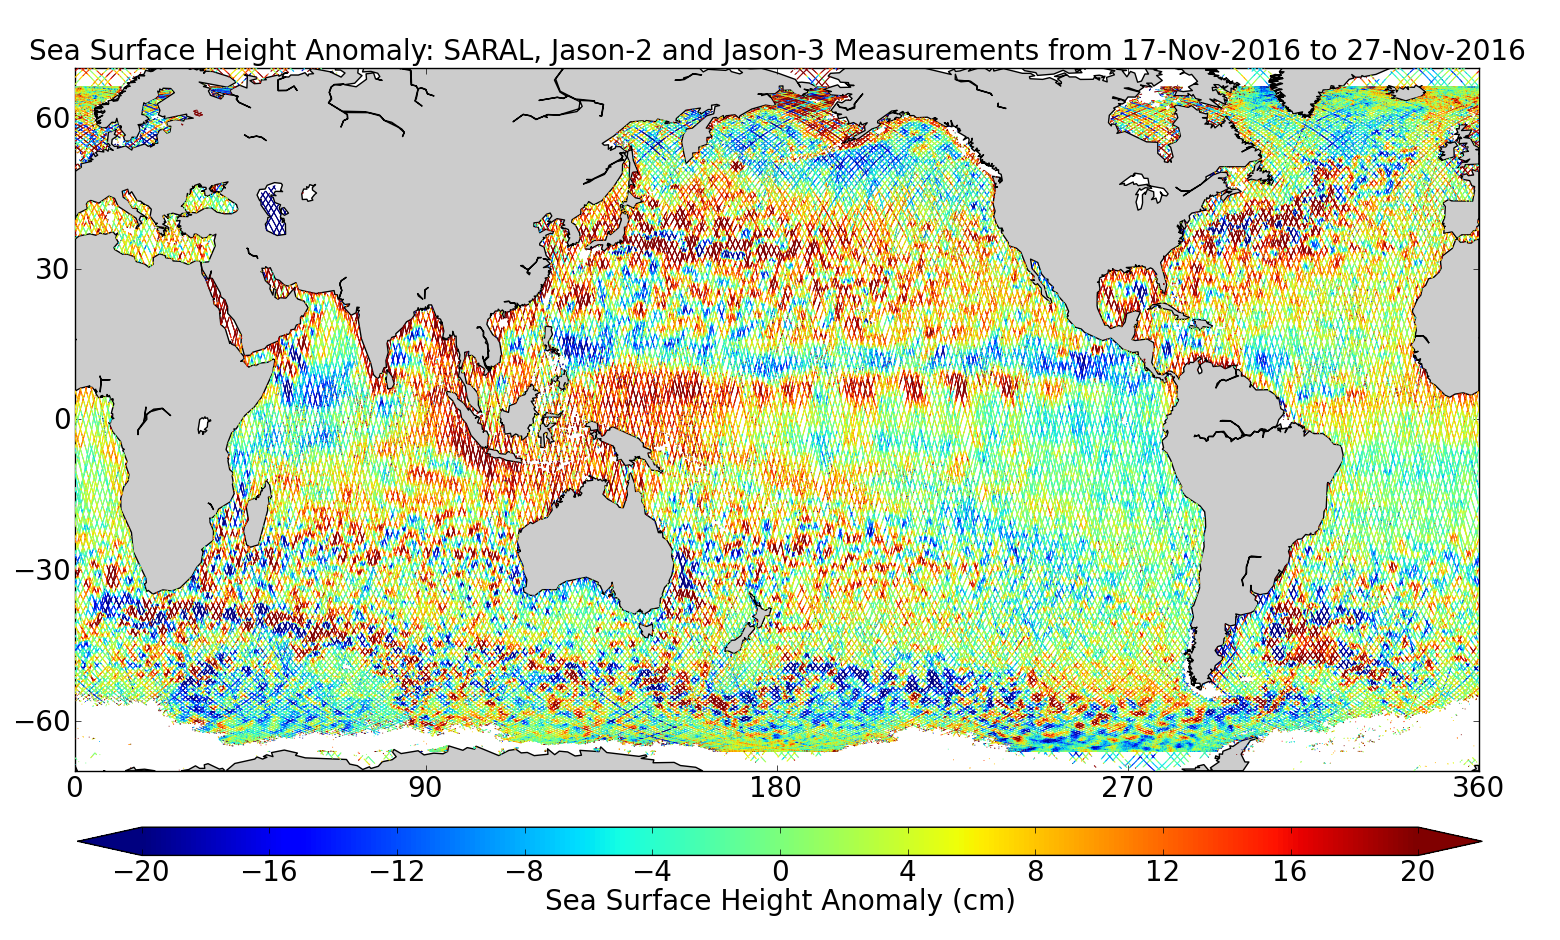 Sea Surface Height Anomaly: SARAL, Jason-2 and Jason-3 Measurements from 17-Nov-2016 to 27-Nov-2016